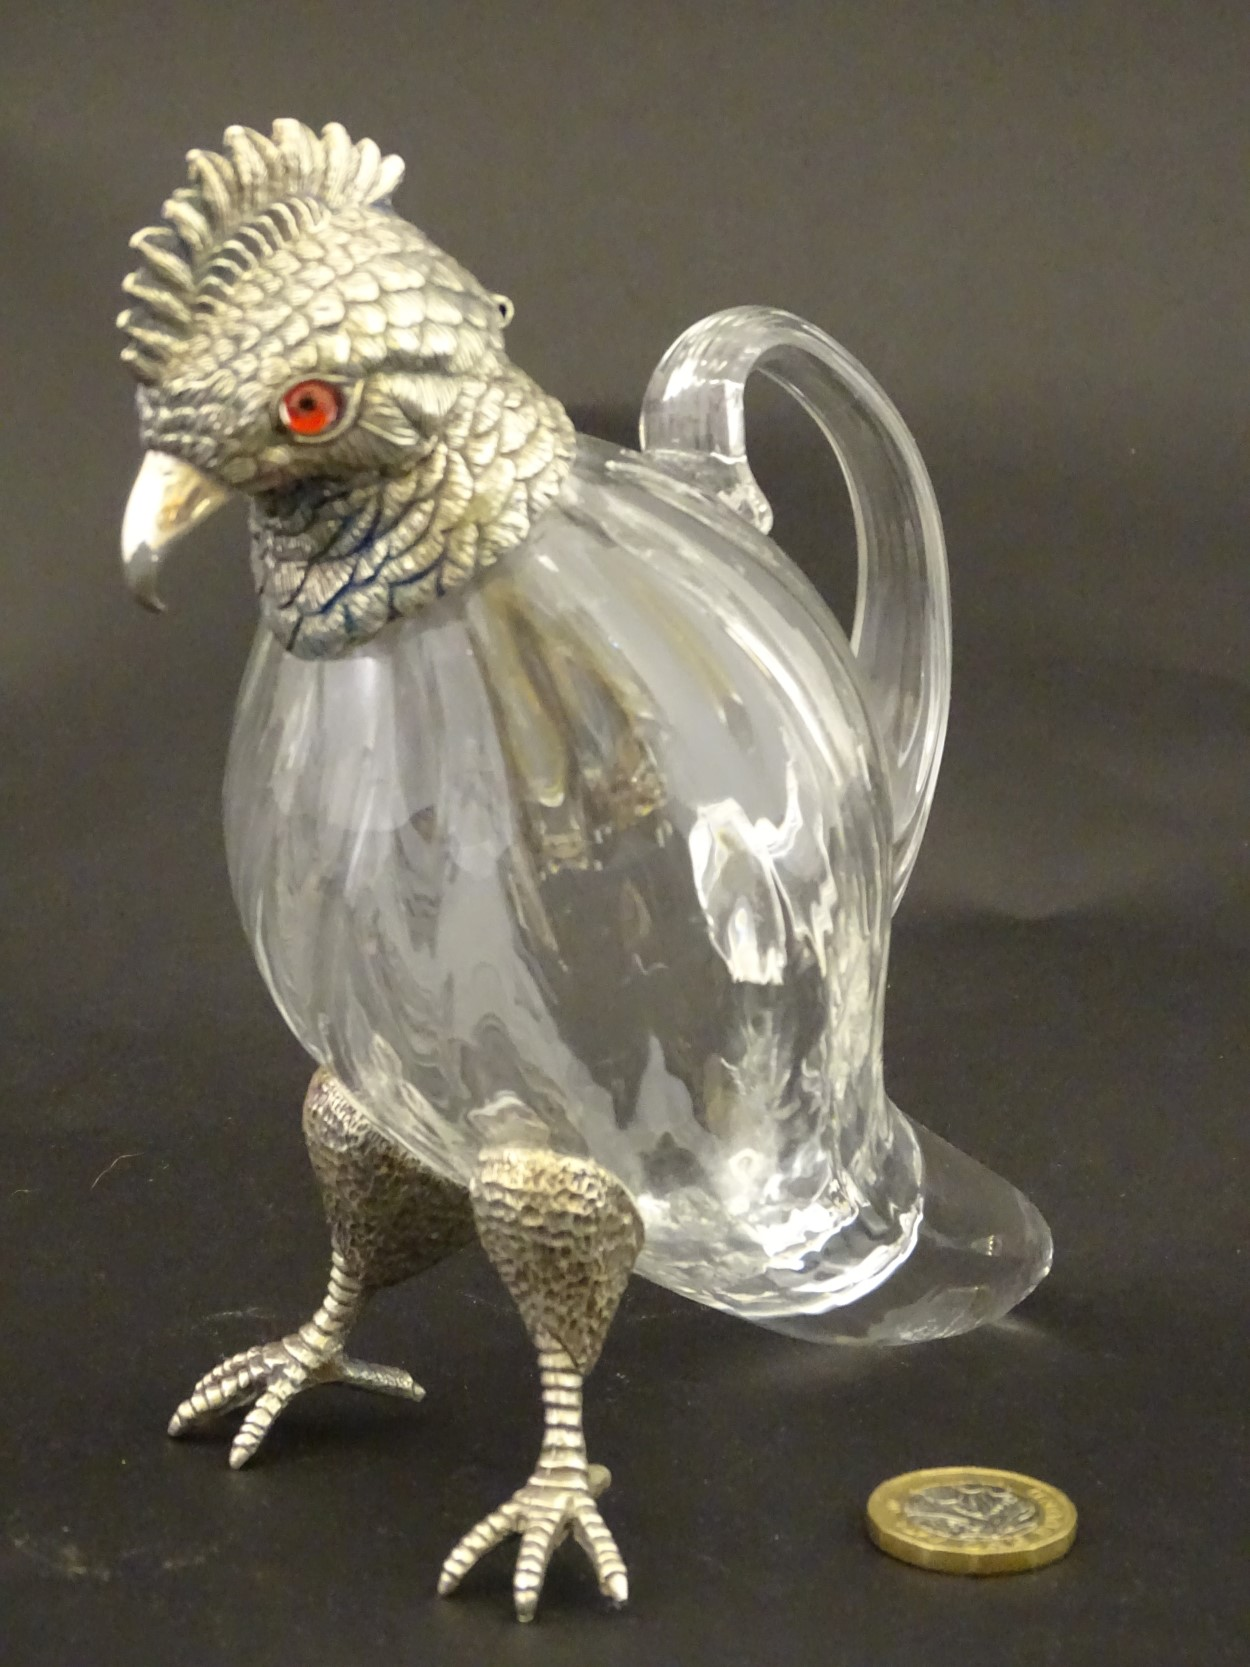 Lot 102 - Glass : a clear glass whiskey Noggin / Chota peg ( whisky water jug ) with silver plate mounts in